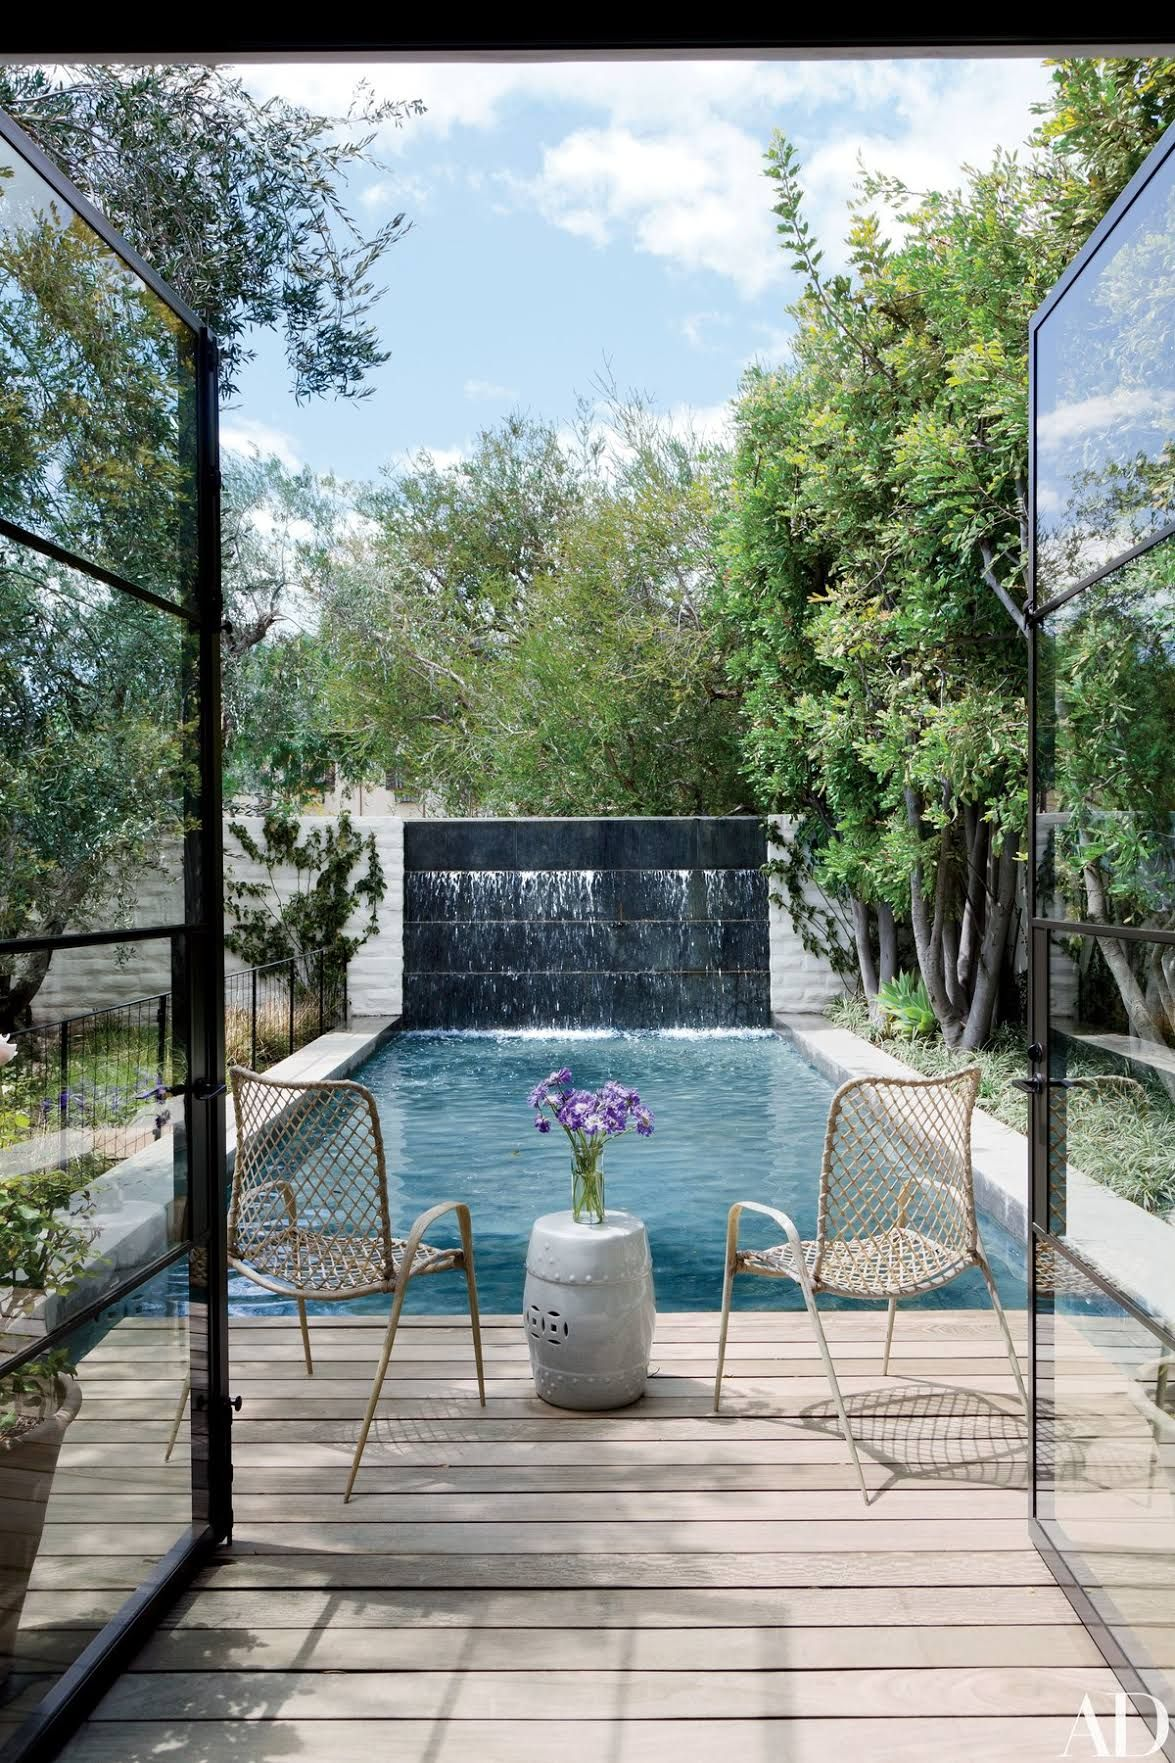 Outside The Room A Small Terrace Overlooks Reflecting Pool With Water Wall